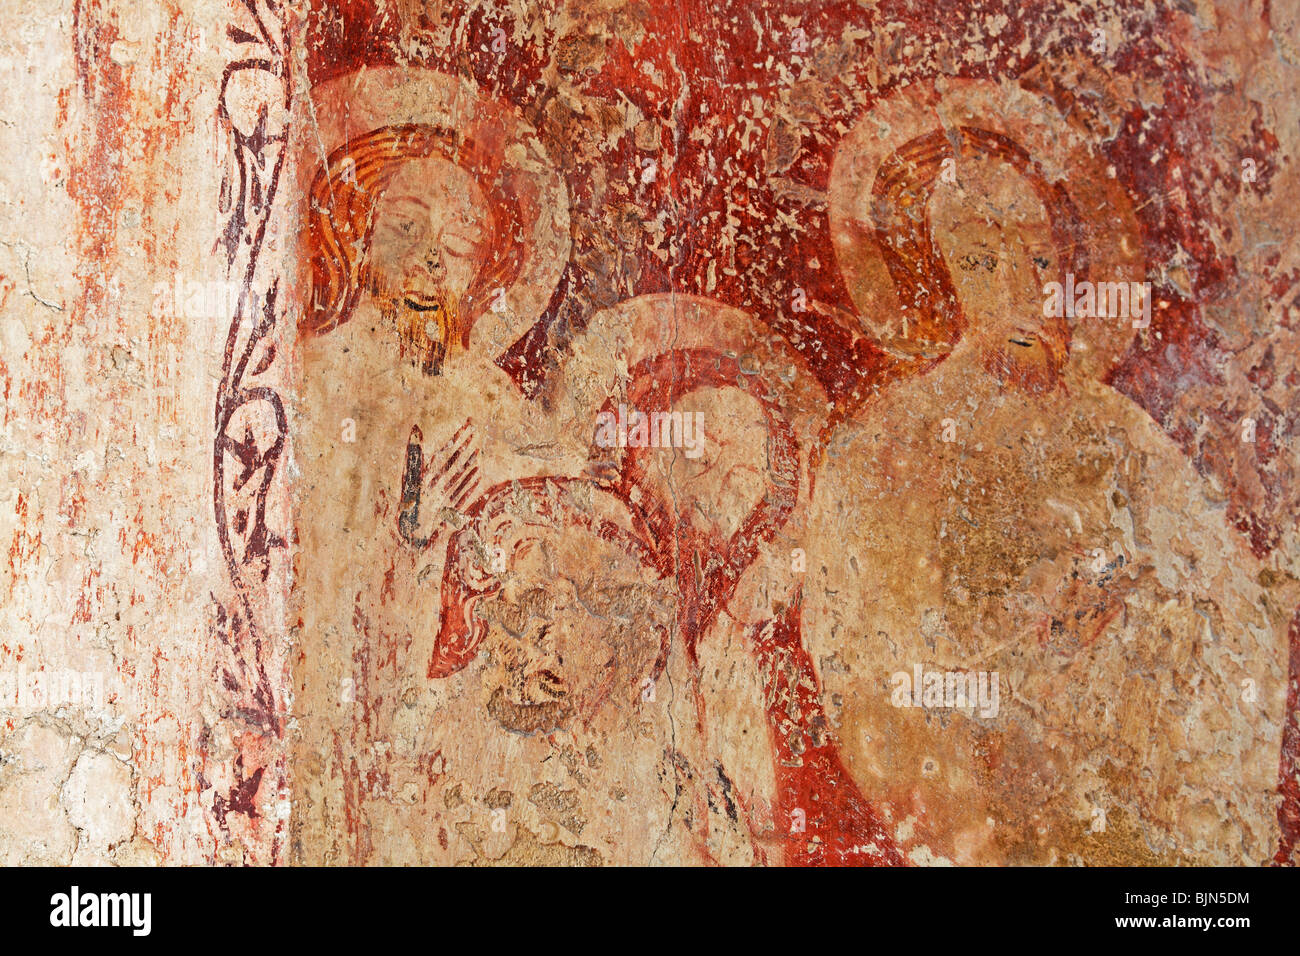 Medieval Wall Paintings depicting saints or apostles, All Saints Church, Crostwight, Norfolk - Stock Image